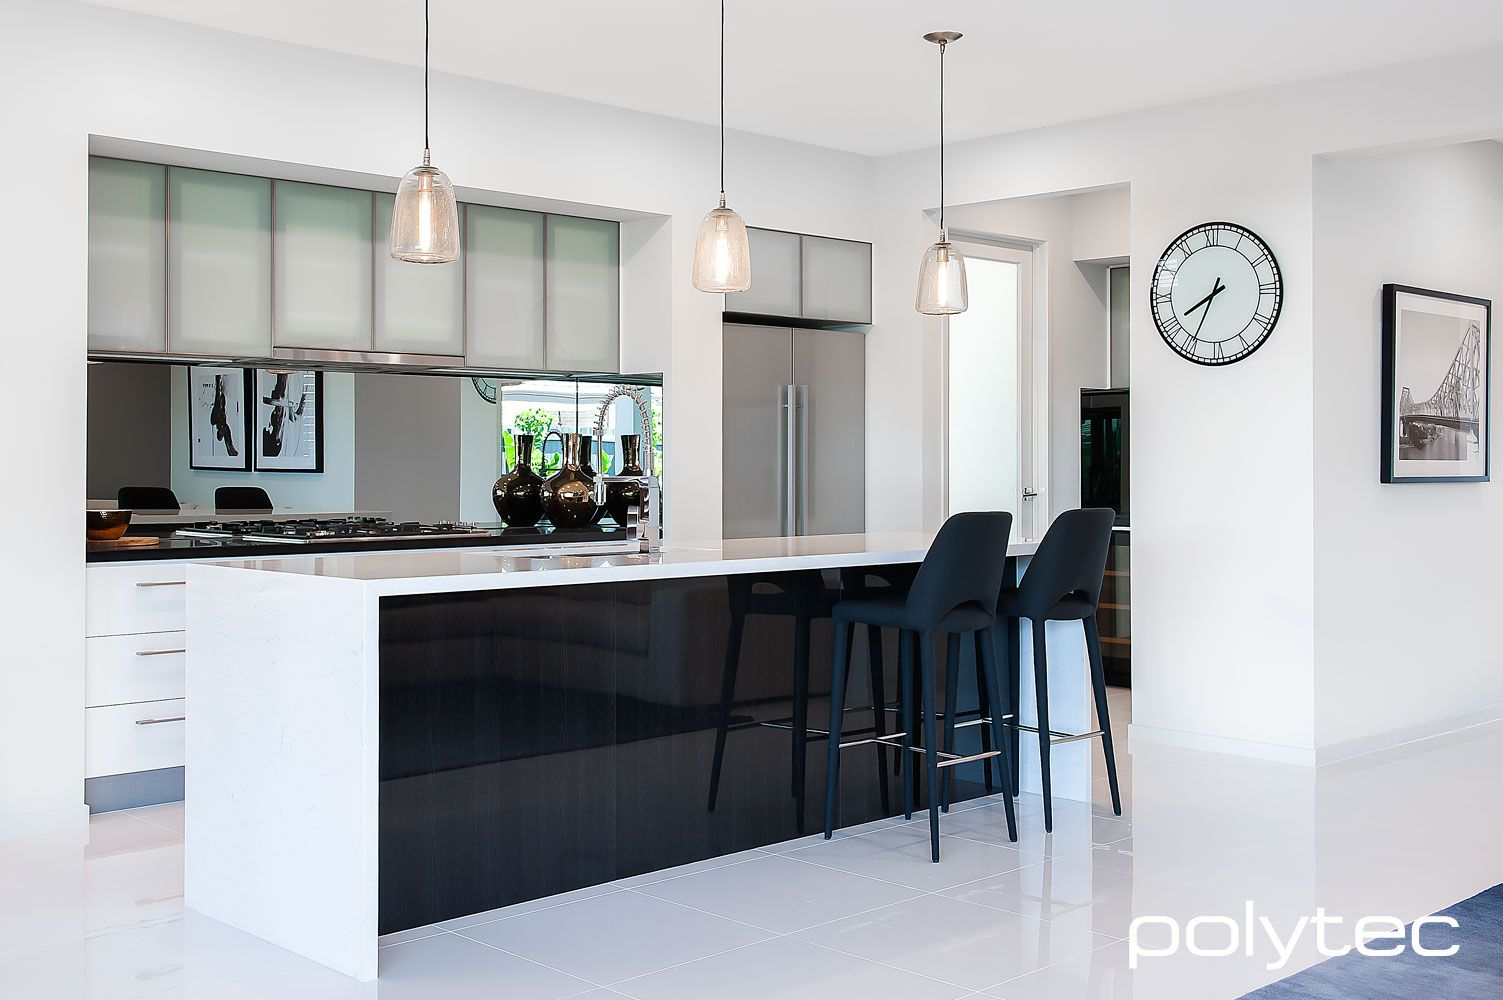 Polytec Glass Kitchen Cabinet Doors Small Kitchen Cabinets Kitchen Design Small